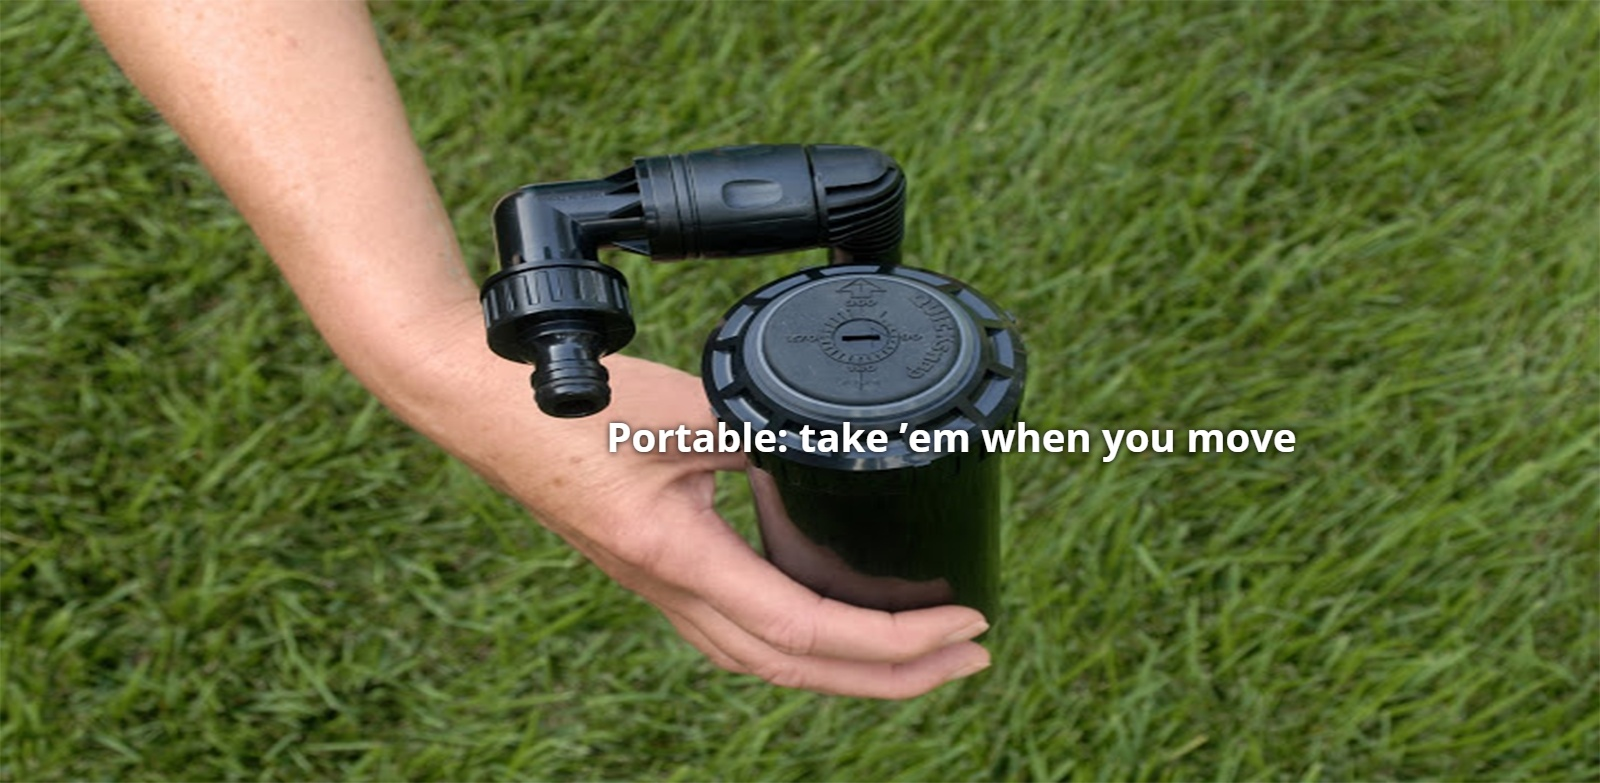 Lawn sprinkler in hand